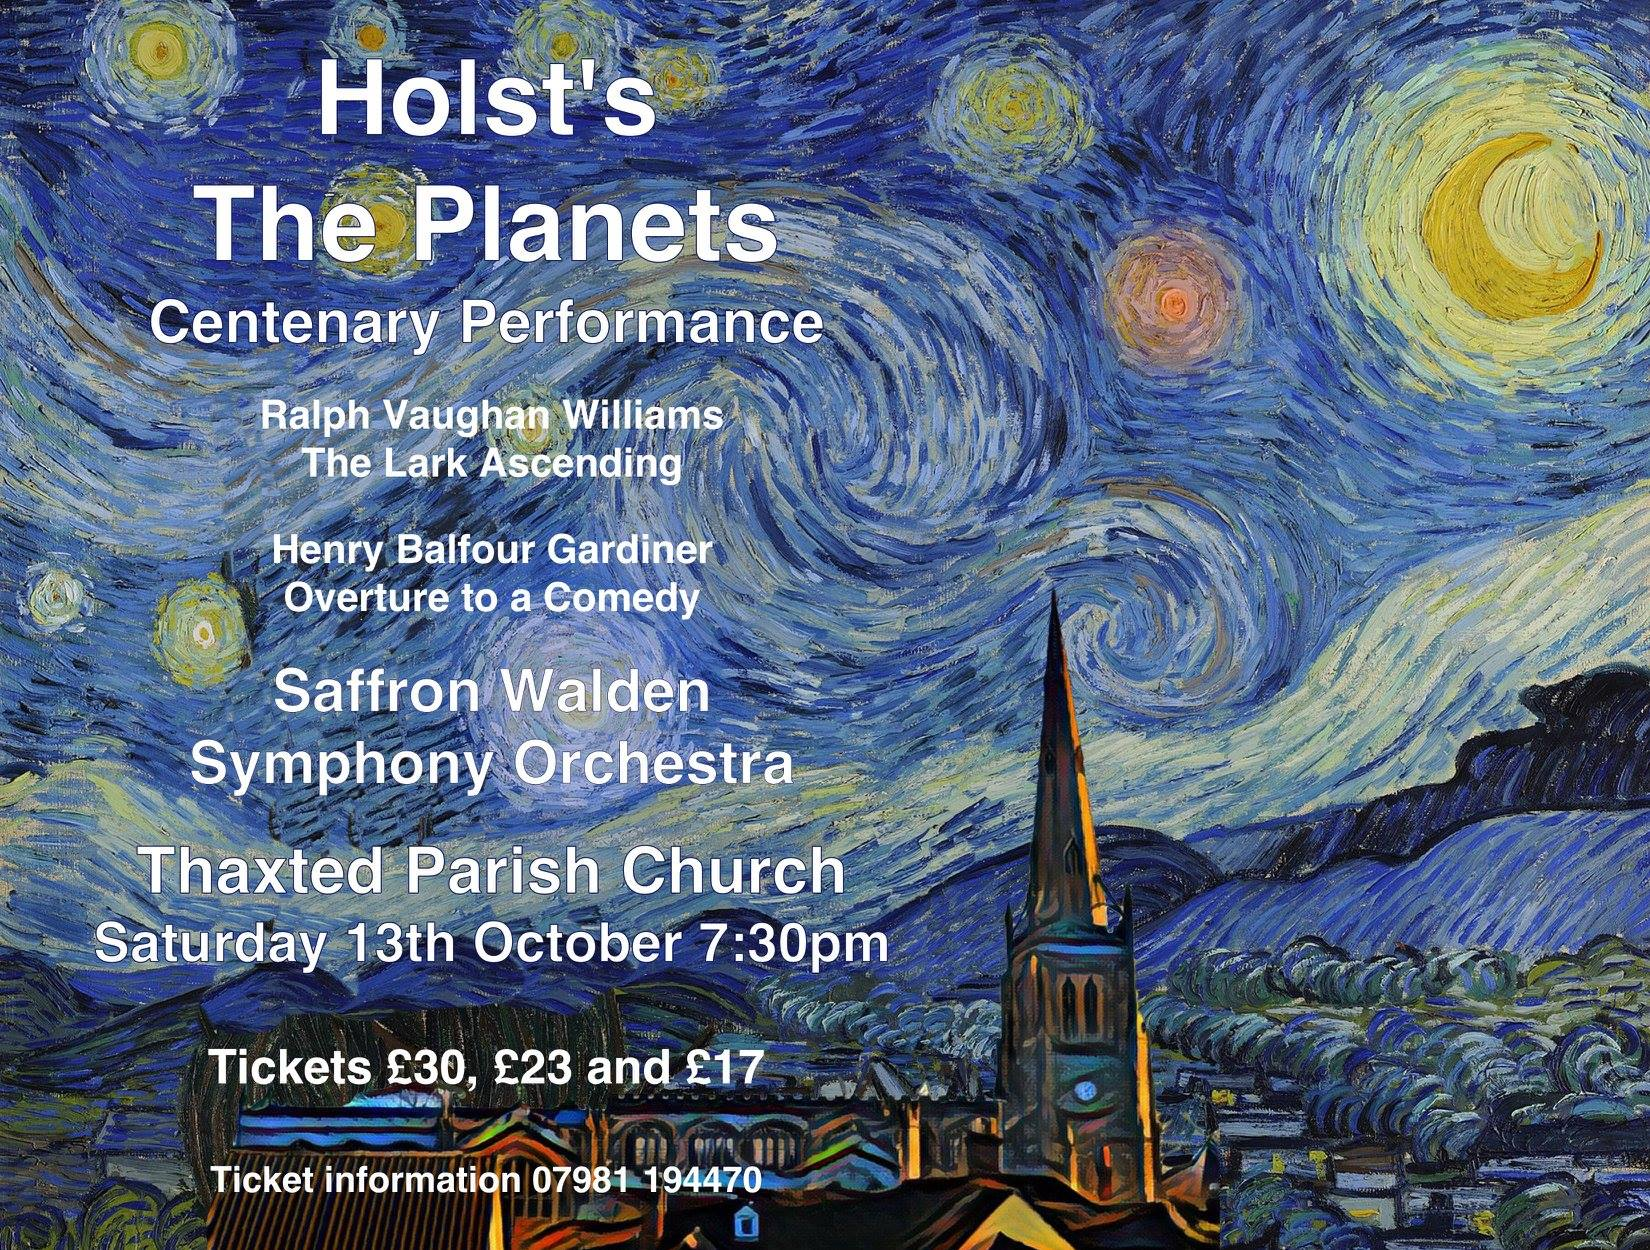 The Planets at Thaxted Church, October 2018